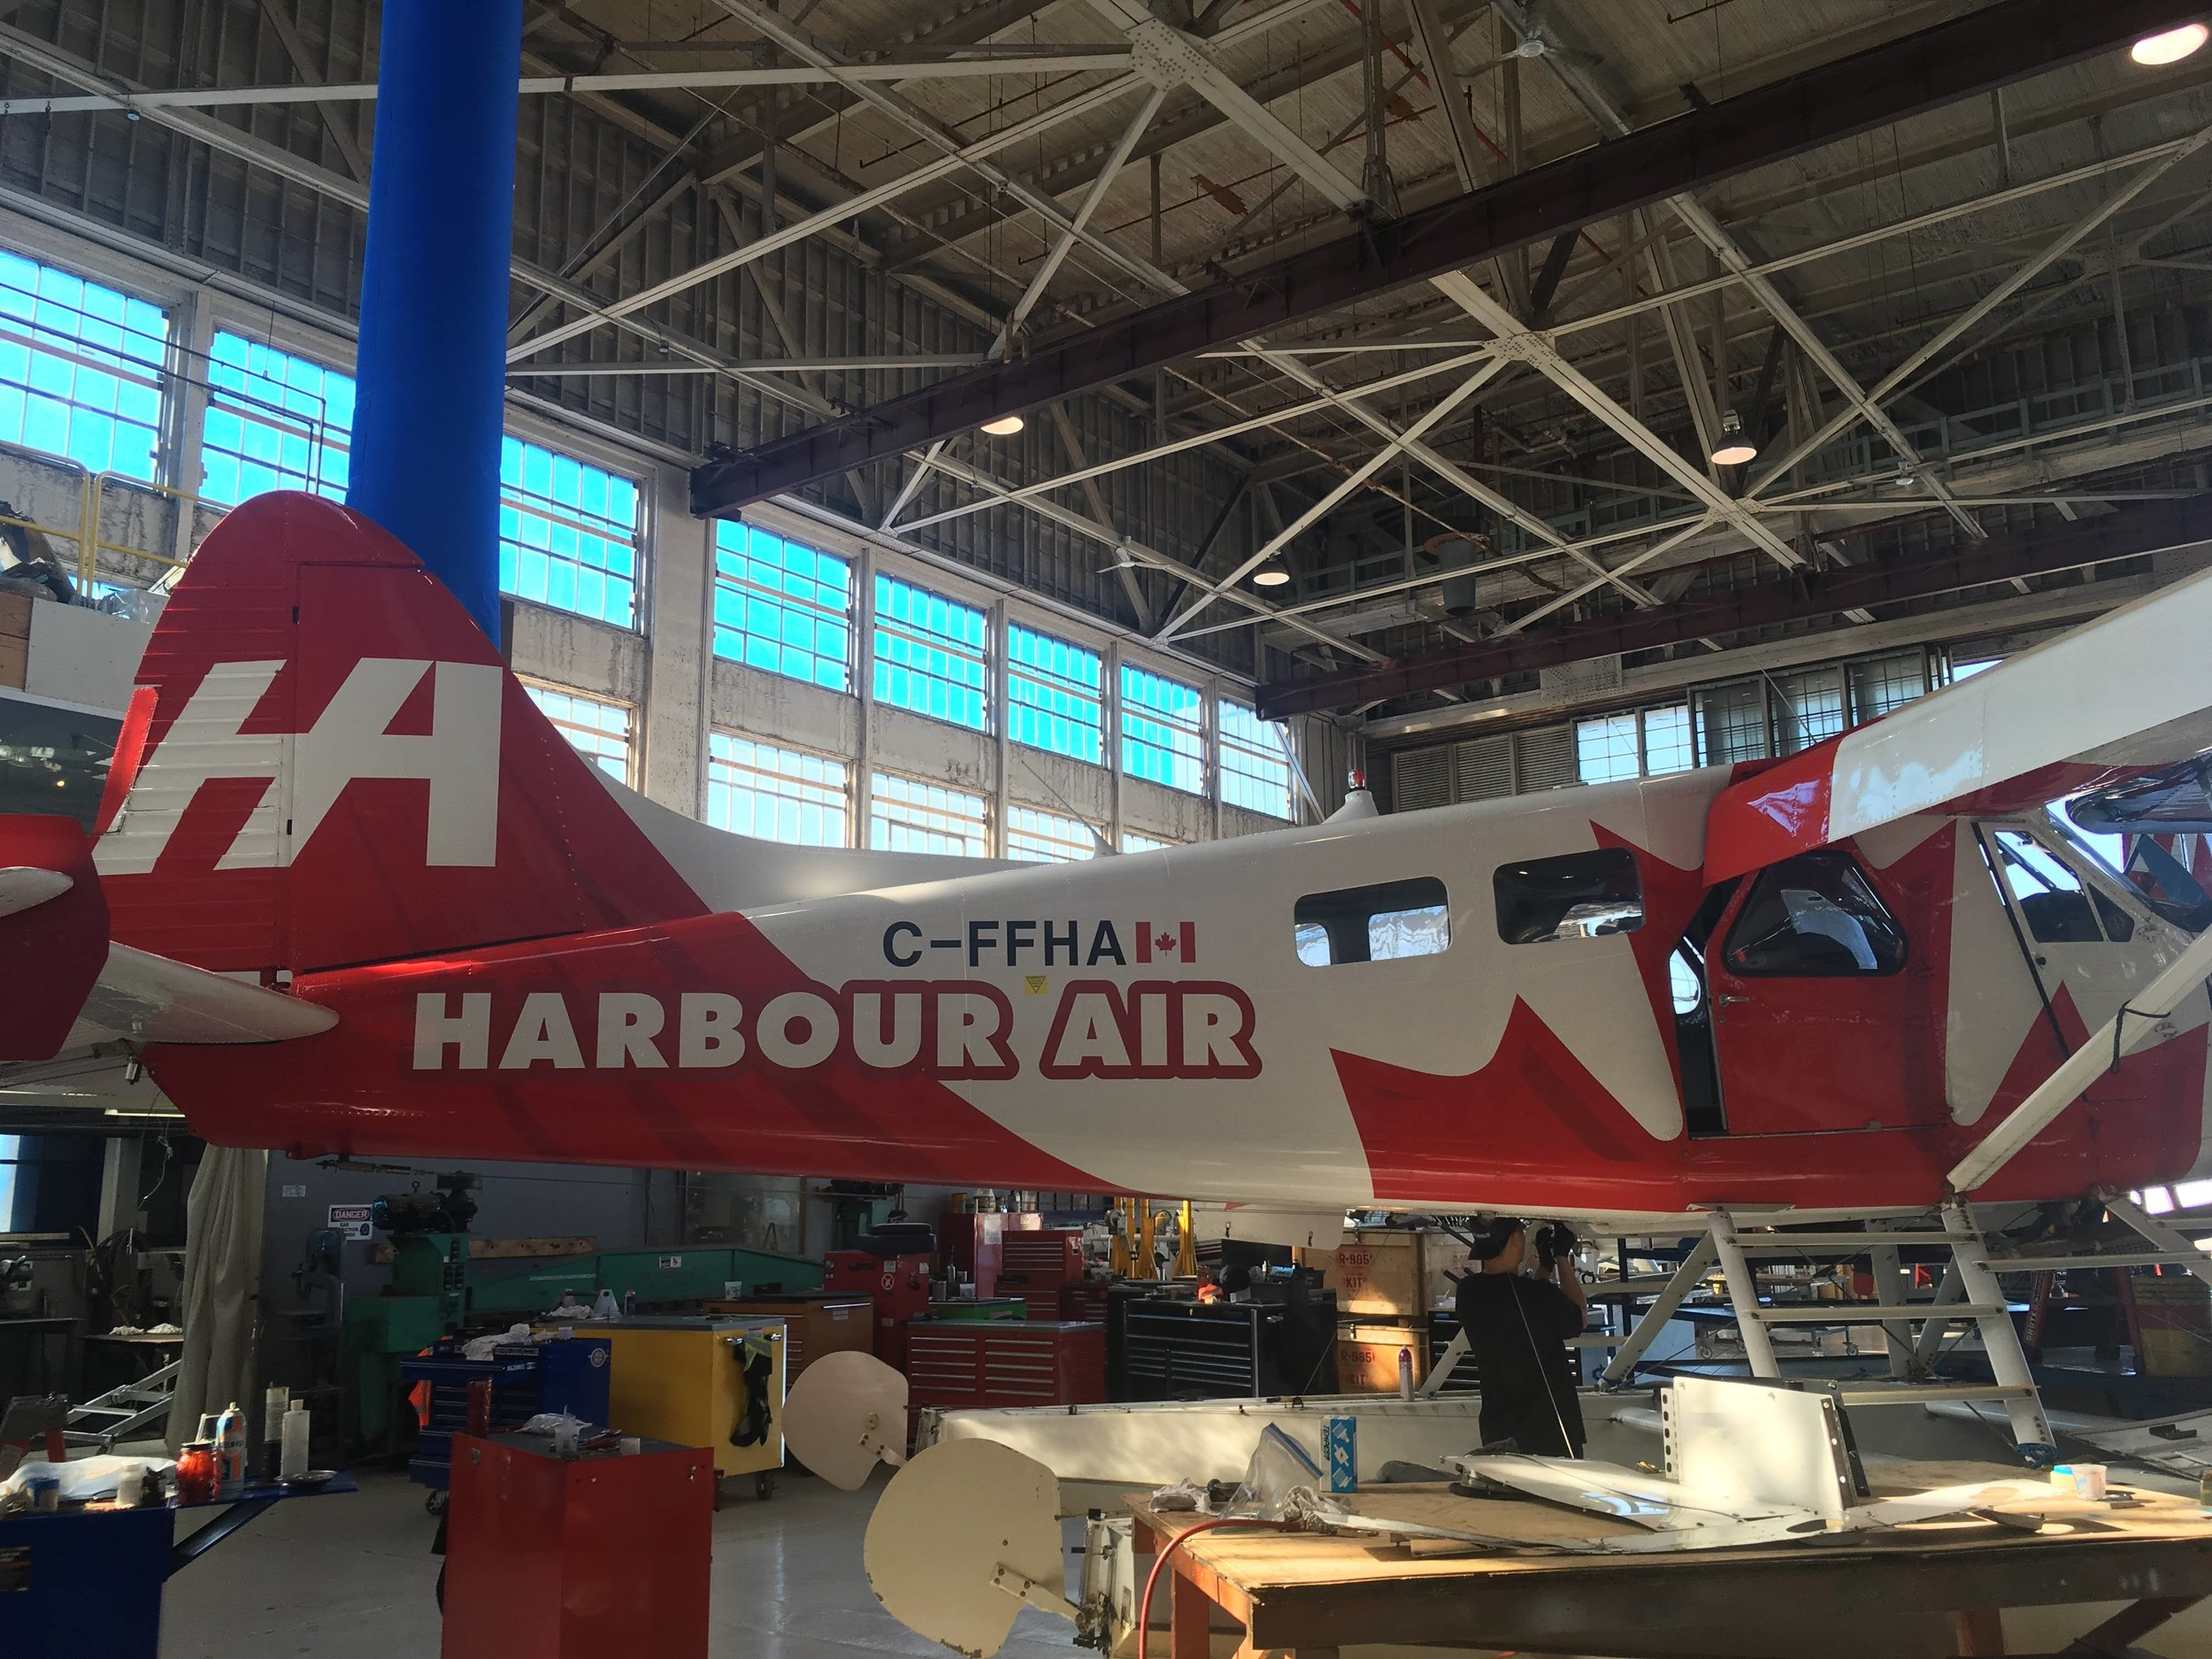 Touring the hangars at Harbour Air YVR airport!